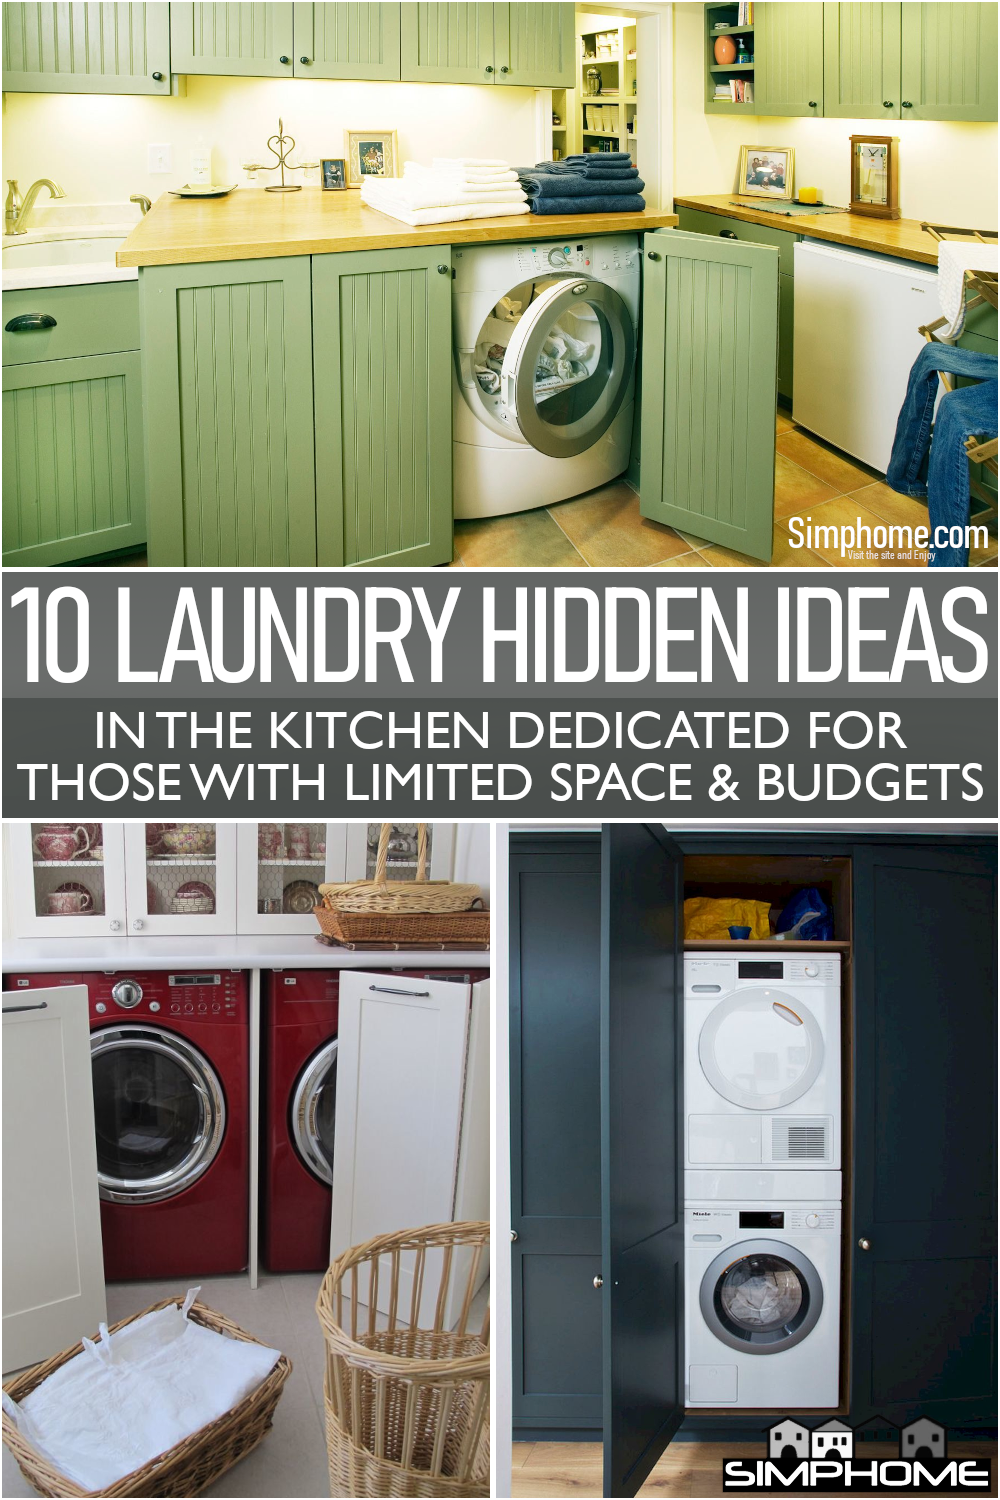 Awesome 10 Laundry Hidden in Kitchen Ideas